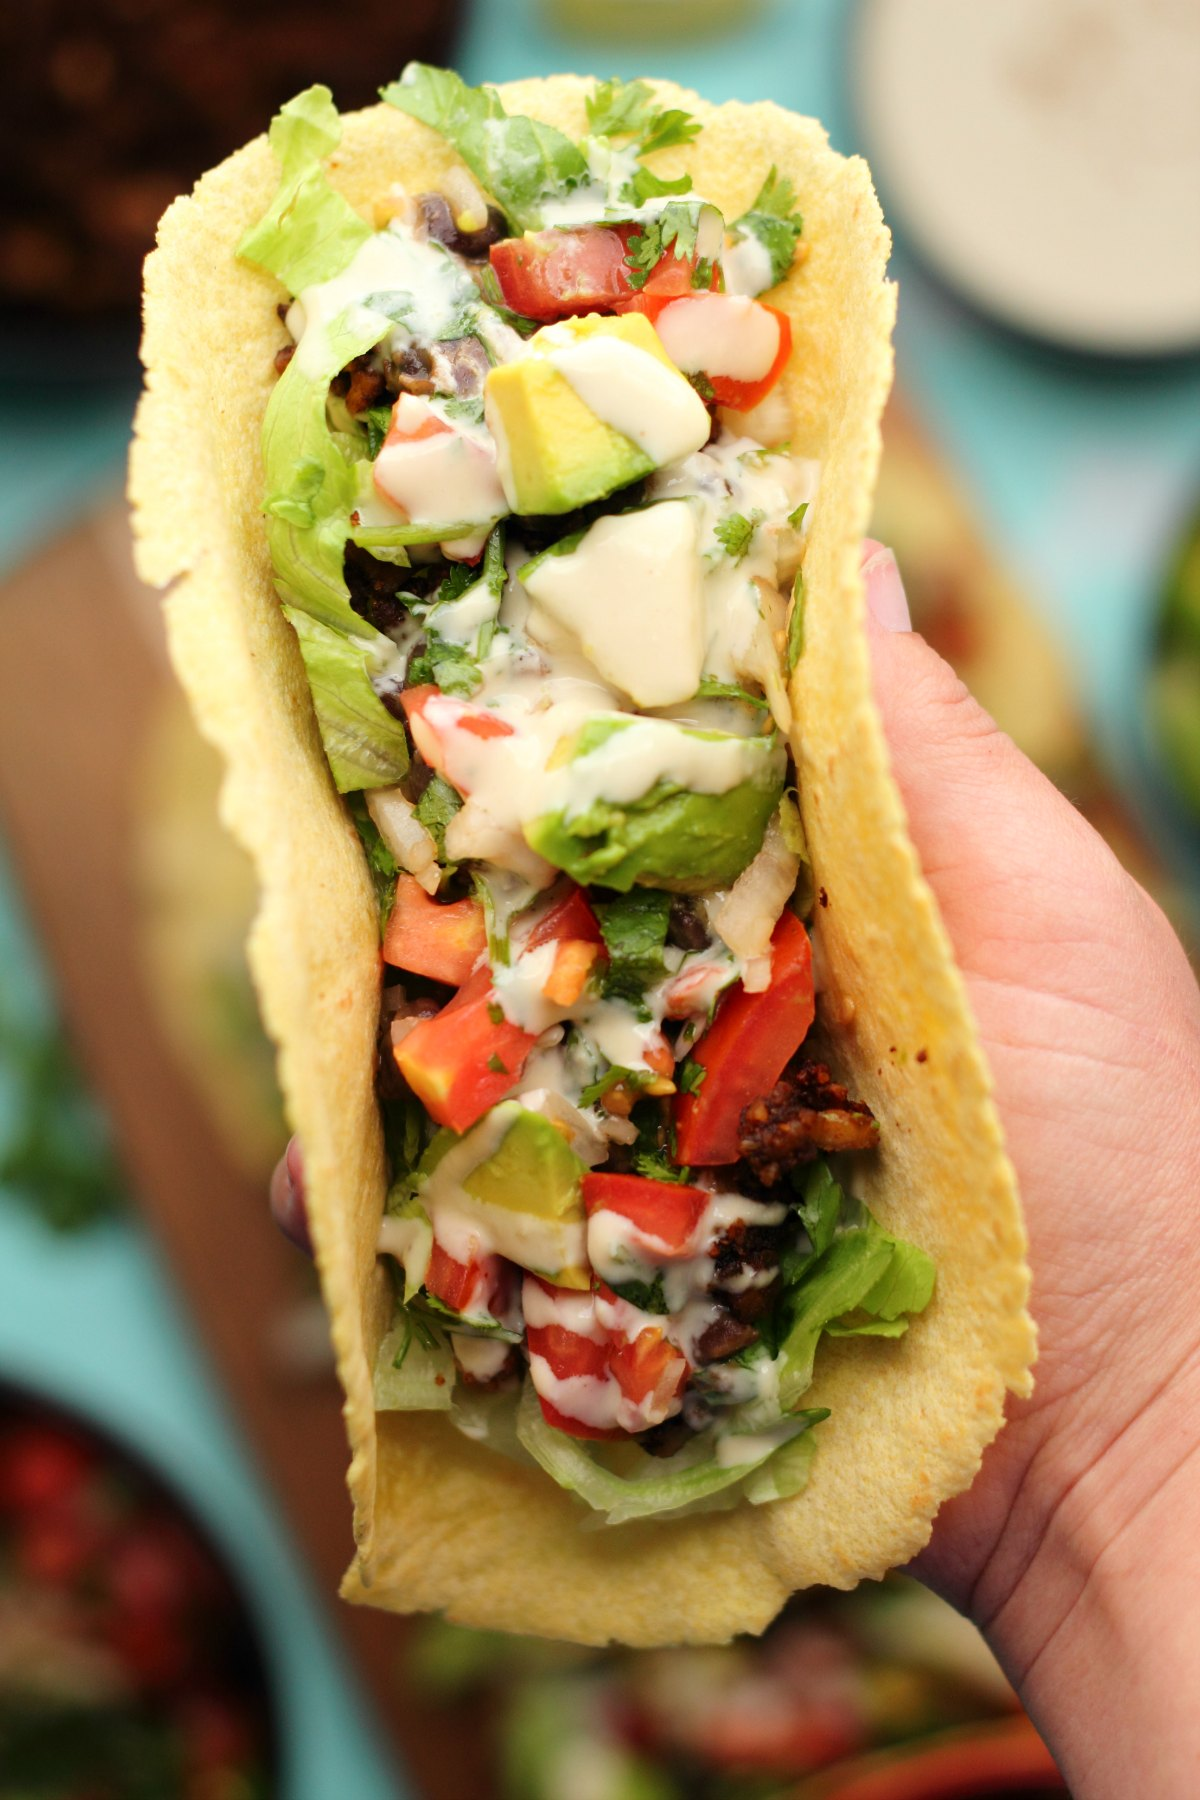 Vegan taco stuffed with black beans, vegan taco meat, pico de gallo, avocado and tahini sauce.